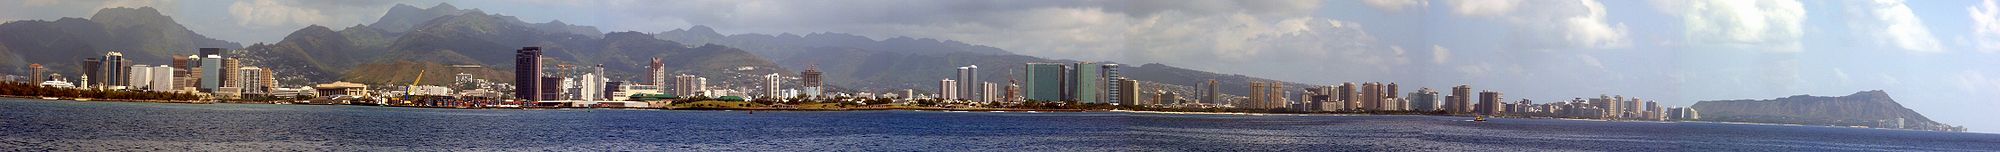 Puerto de Honolulu.